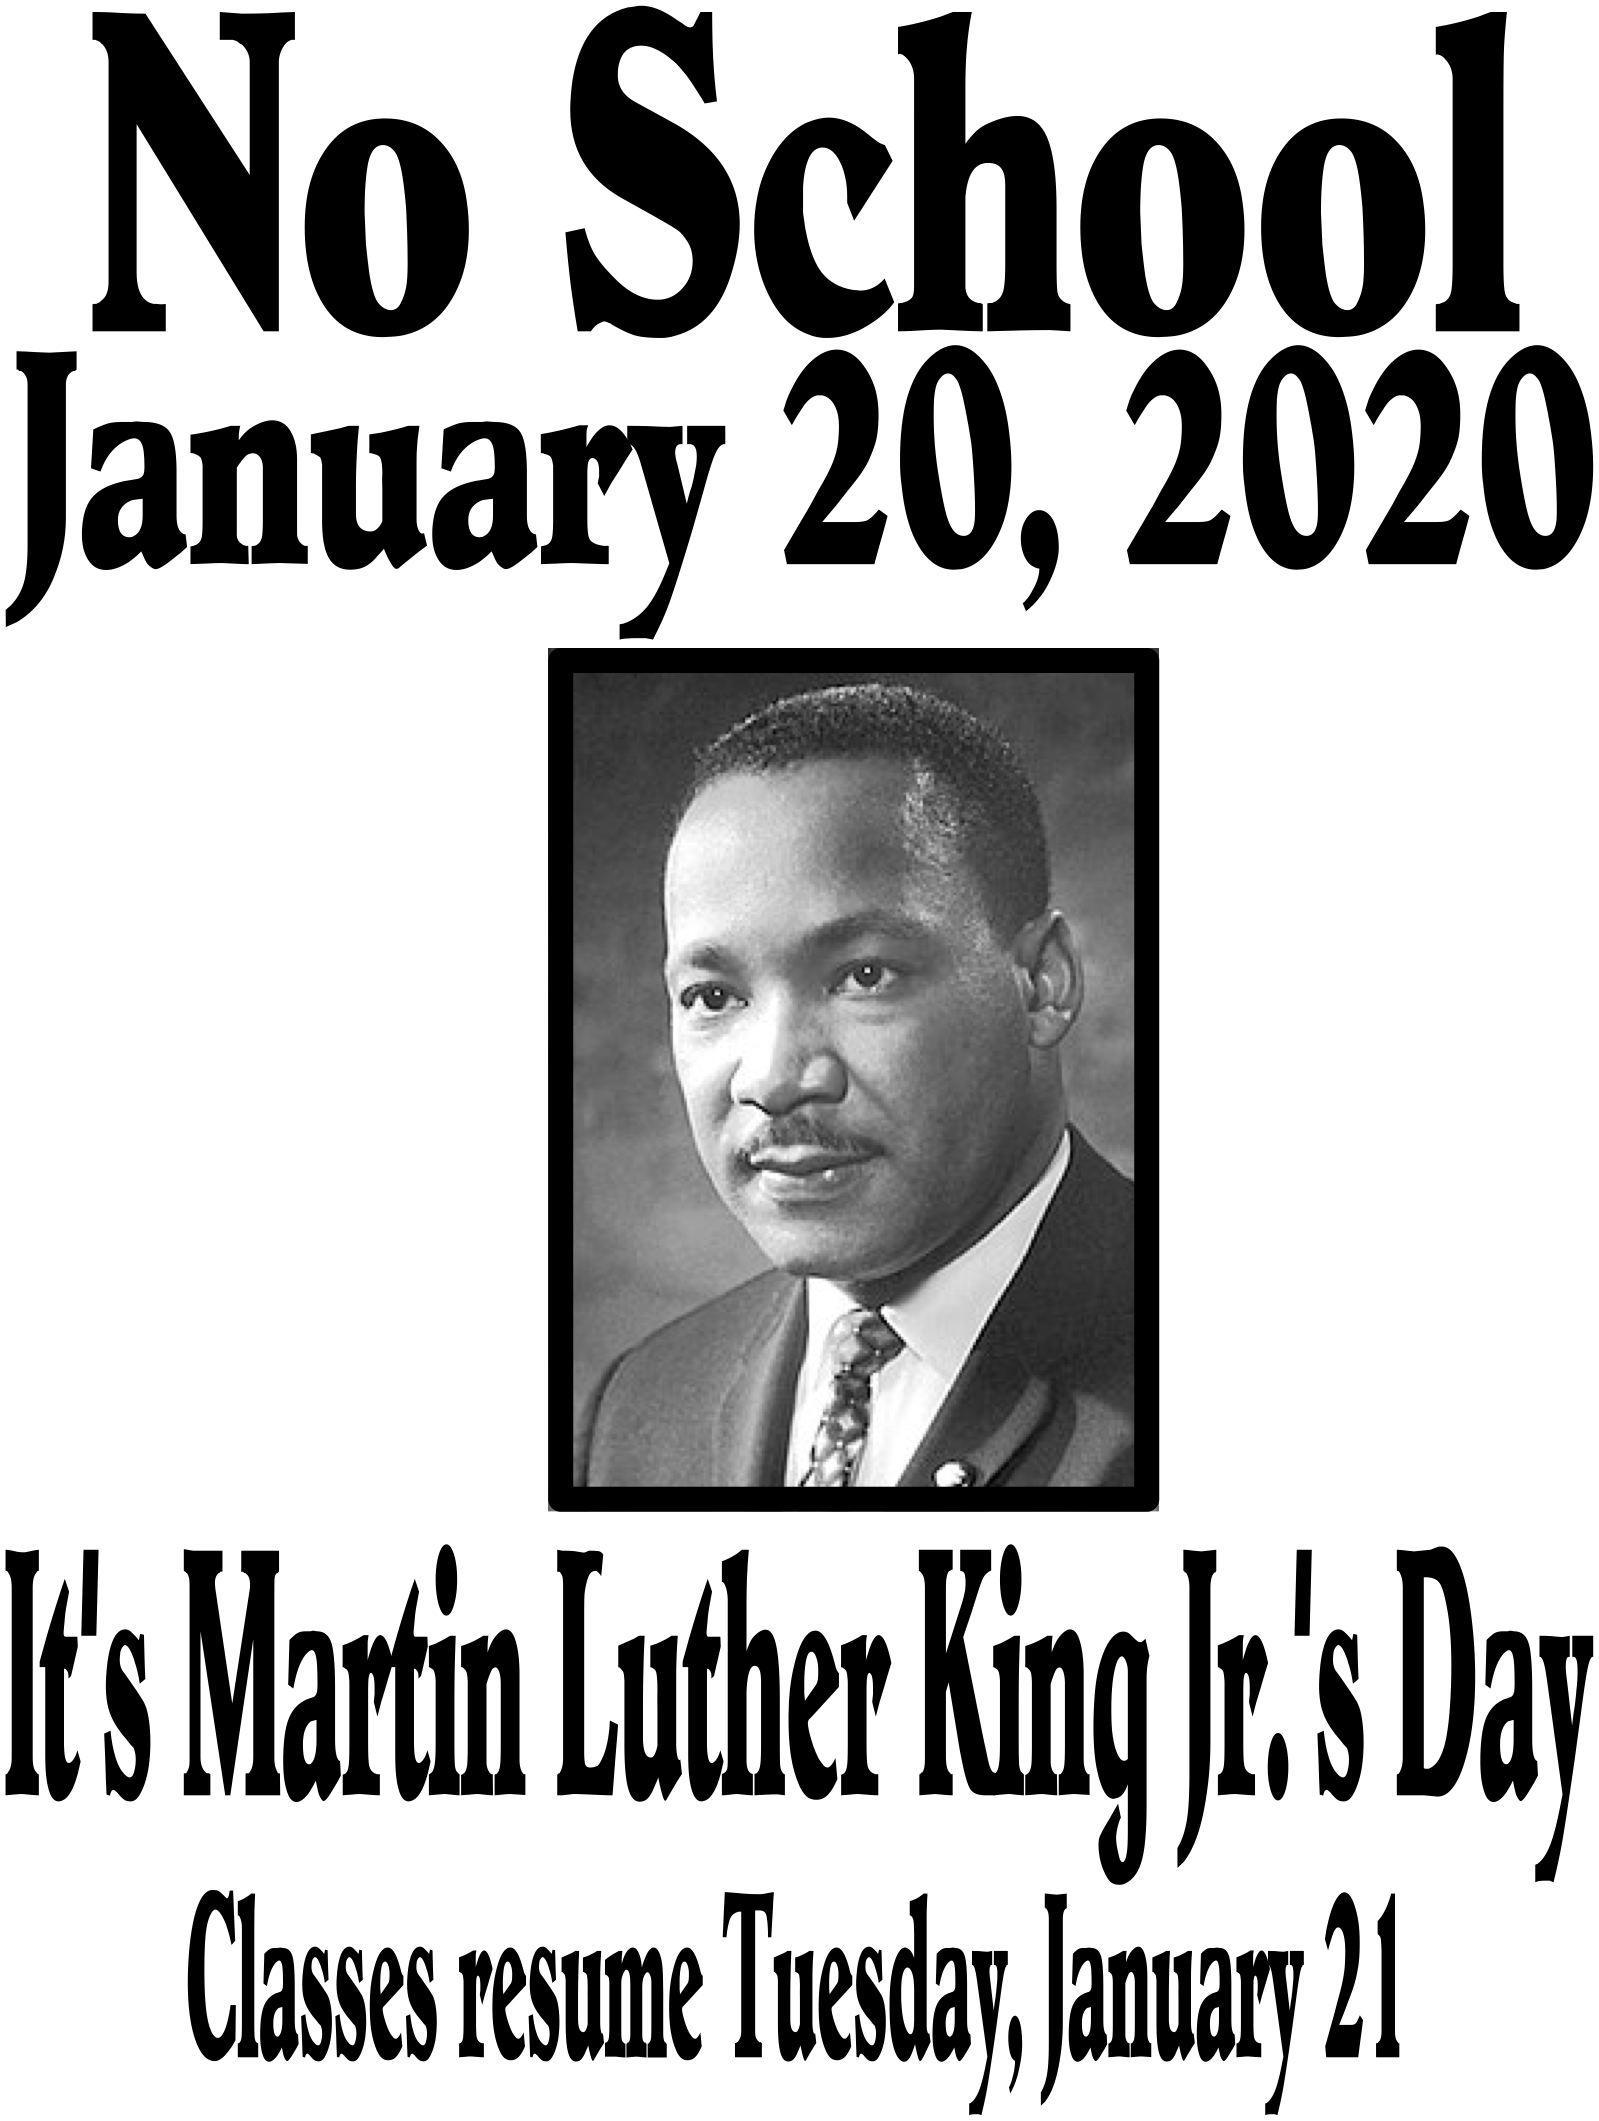 No school January 20, 2020. It's Martin Luther King Jr. 's Birthday poster